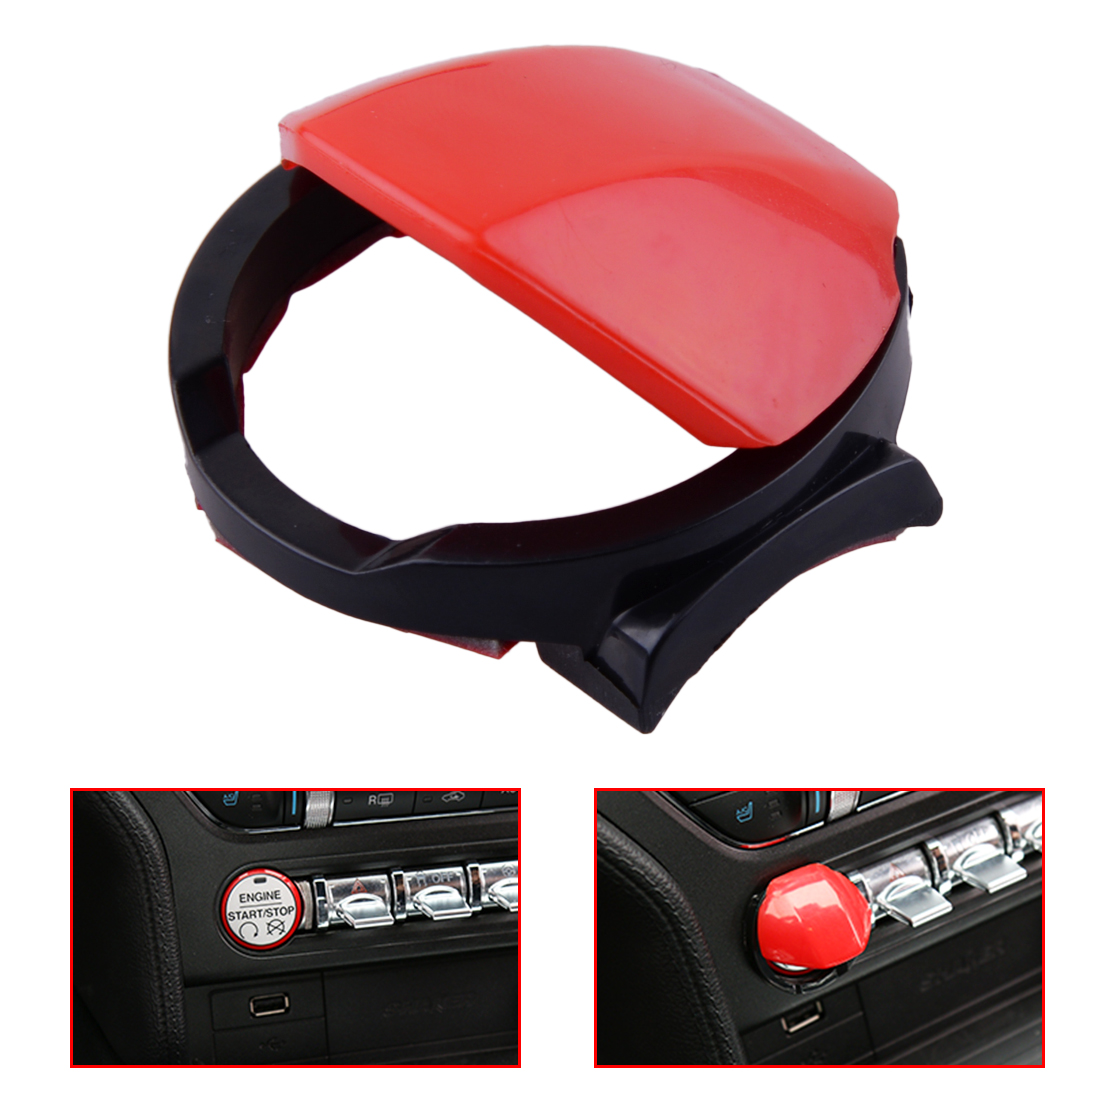 CITALL Red & Black Car Engine Start/Stop ABS Push Button Switch Start Momentary Cover Cap fit For Ford Mustang 2015 2016 2017